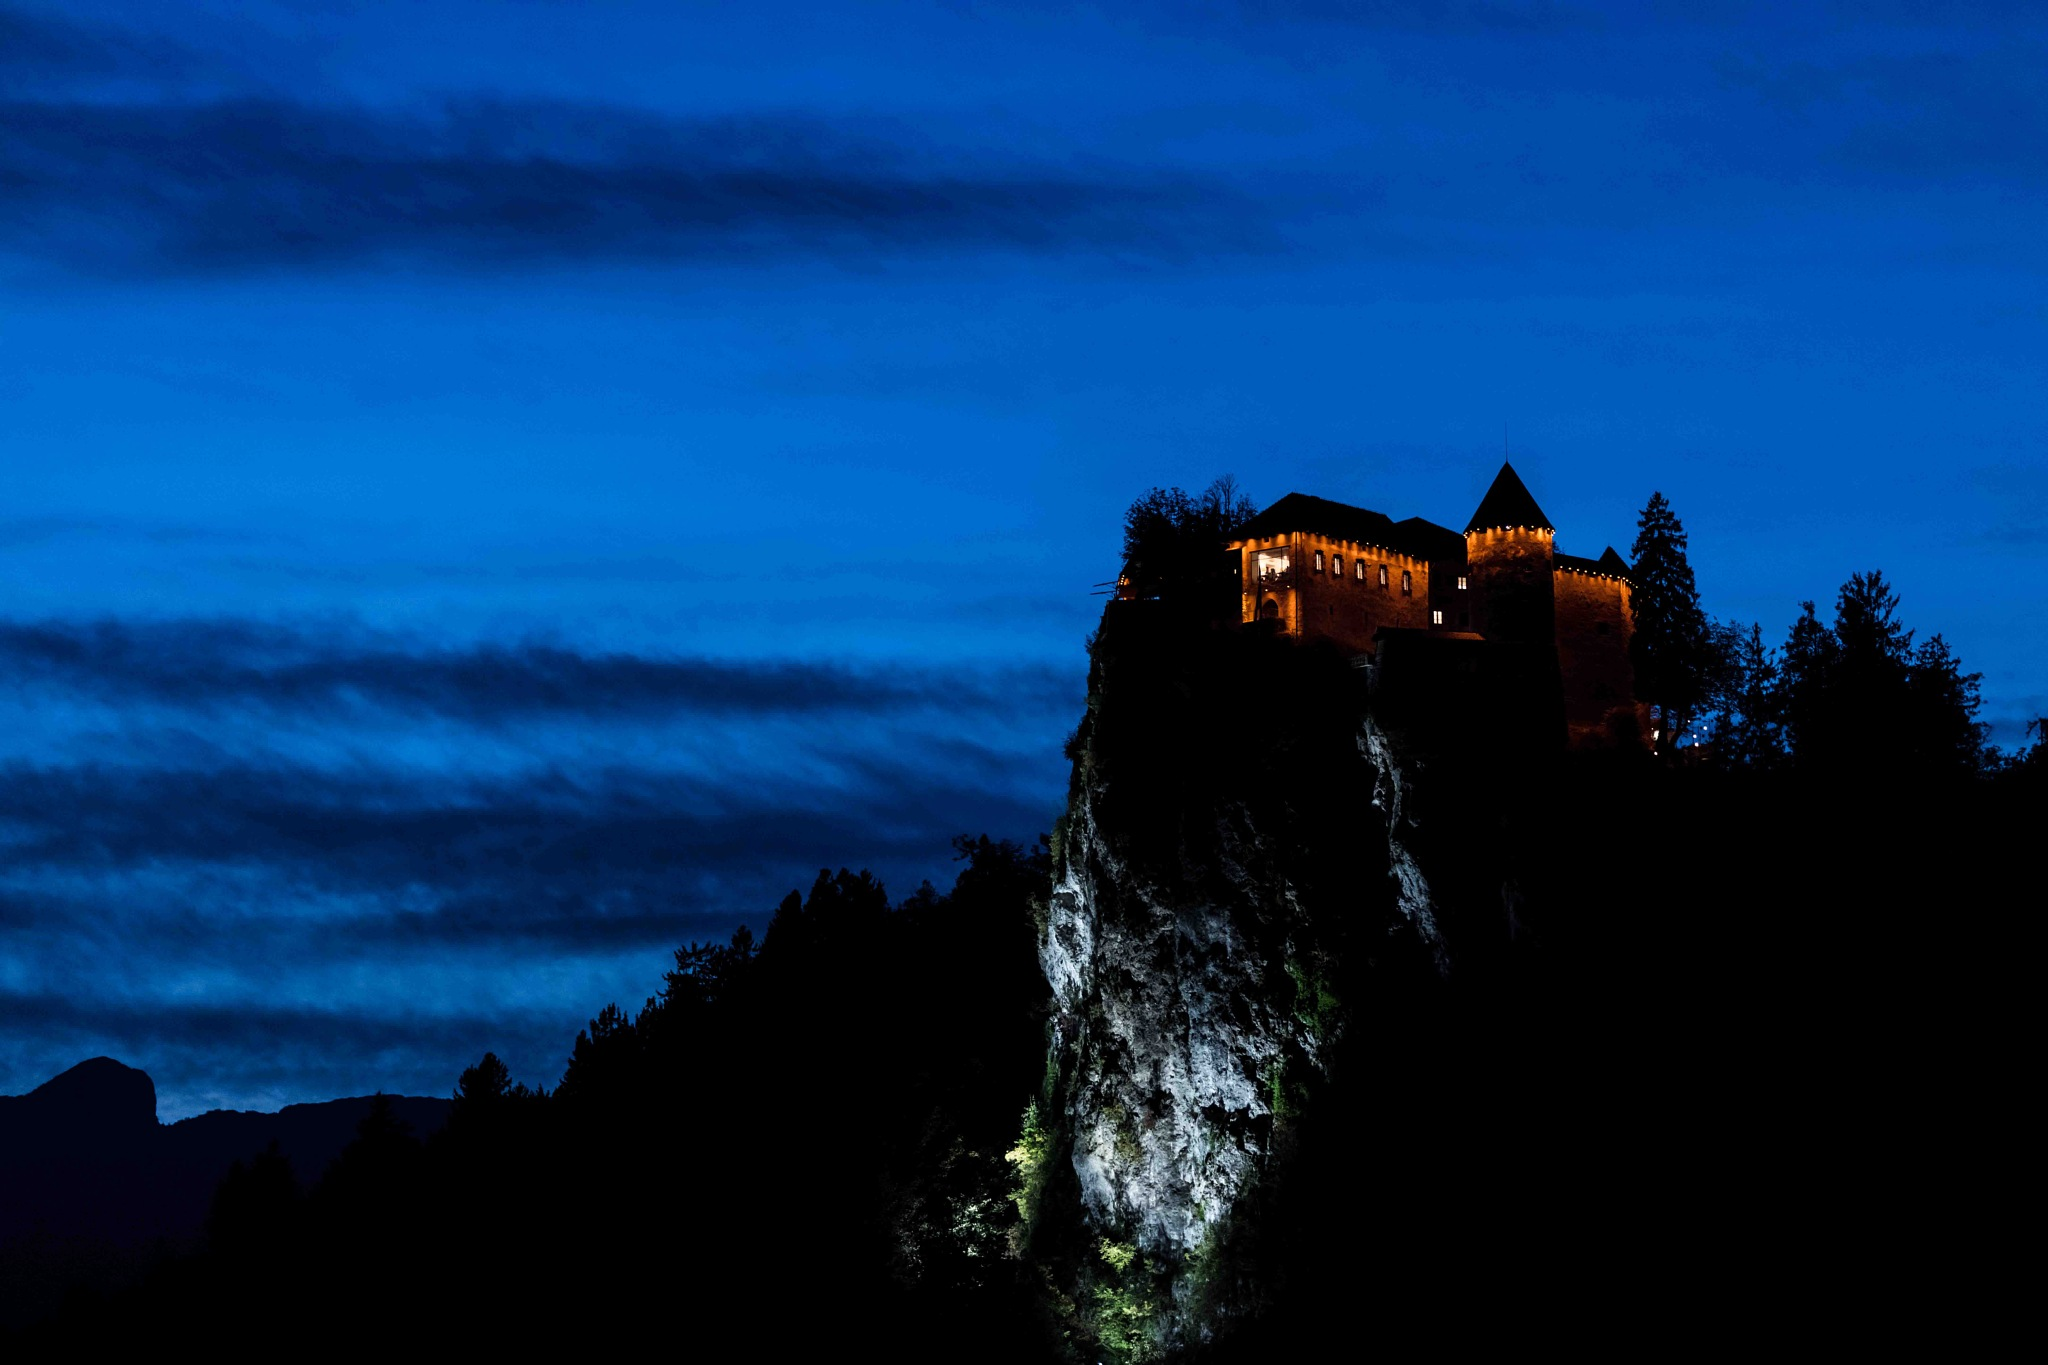 The Castle On The Hill by Vikas Datta